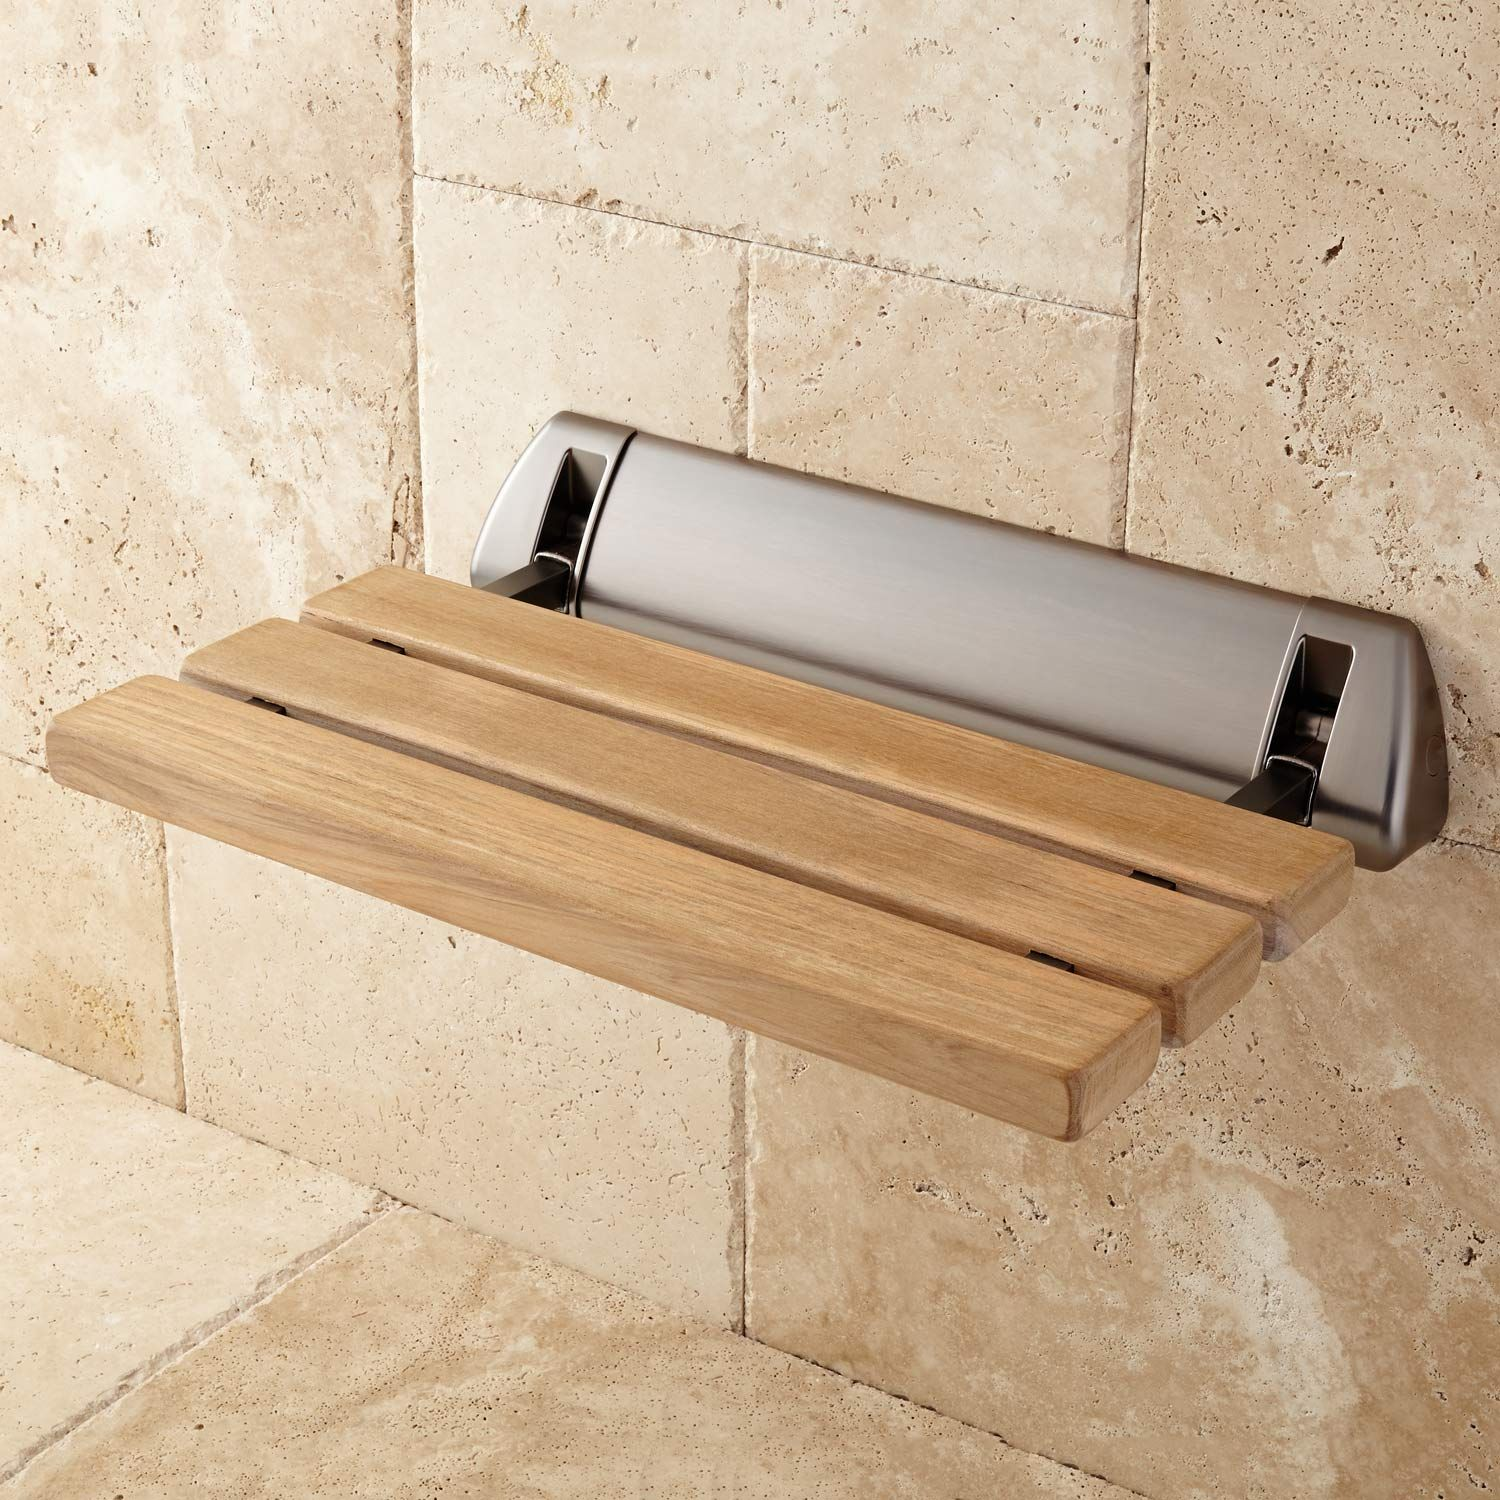 Teak Fold-Up Shower Seat | Shower seat, Teak and Oil rubbed bronze